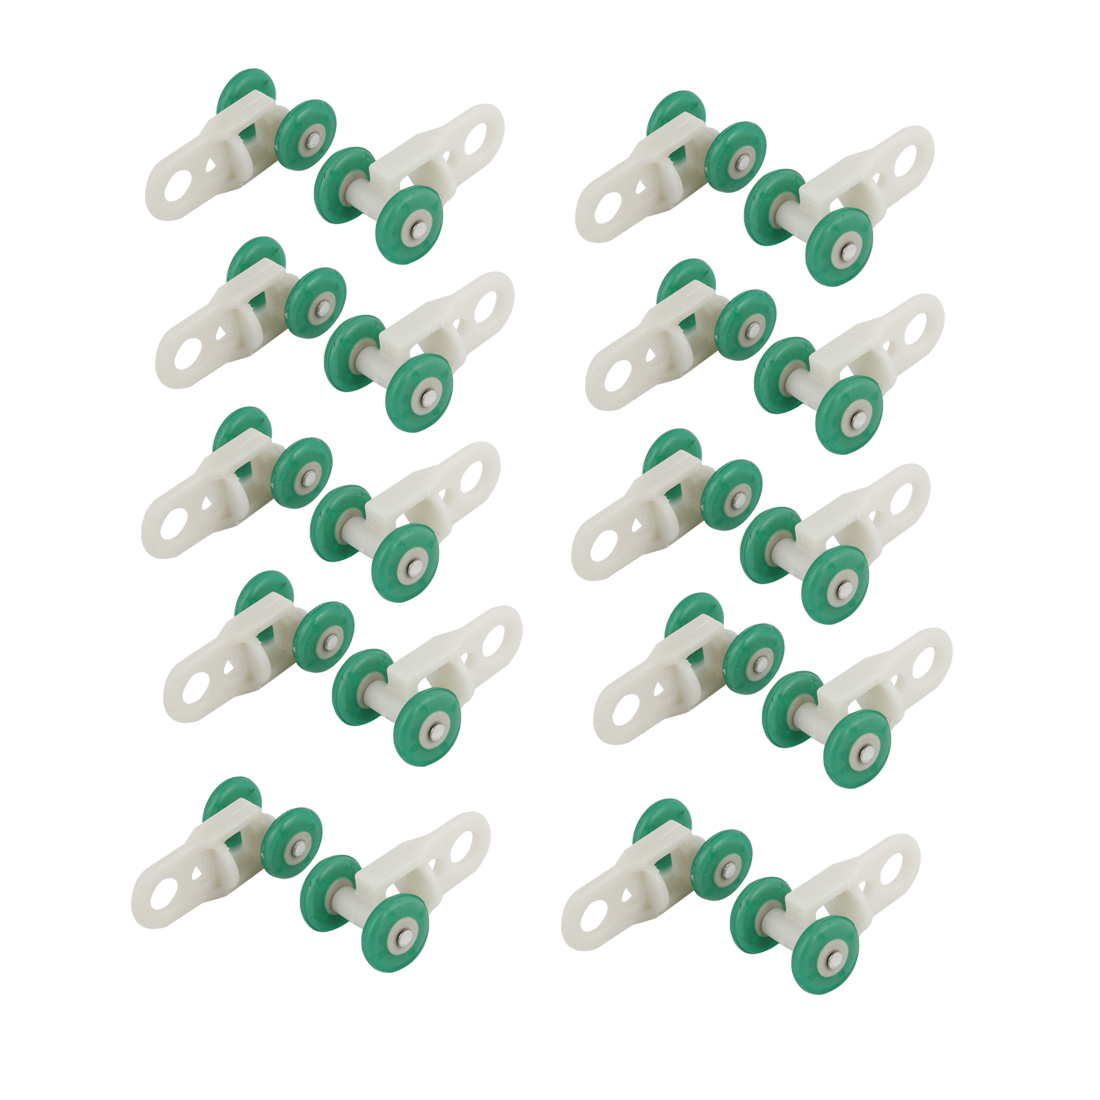 "0.5"" Diameter Green Wheels White Plastic Installation Curtain Track Rollers 20Pcs"